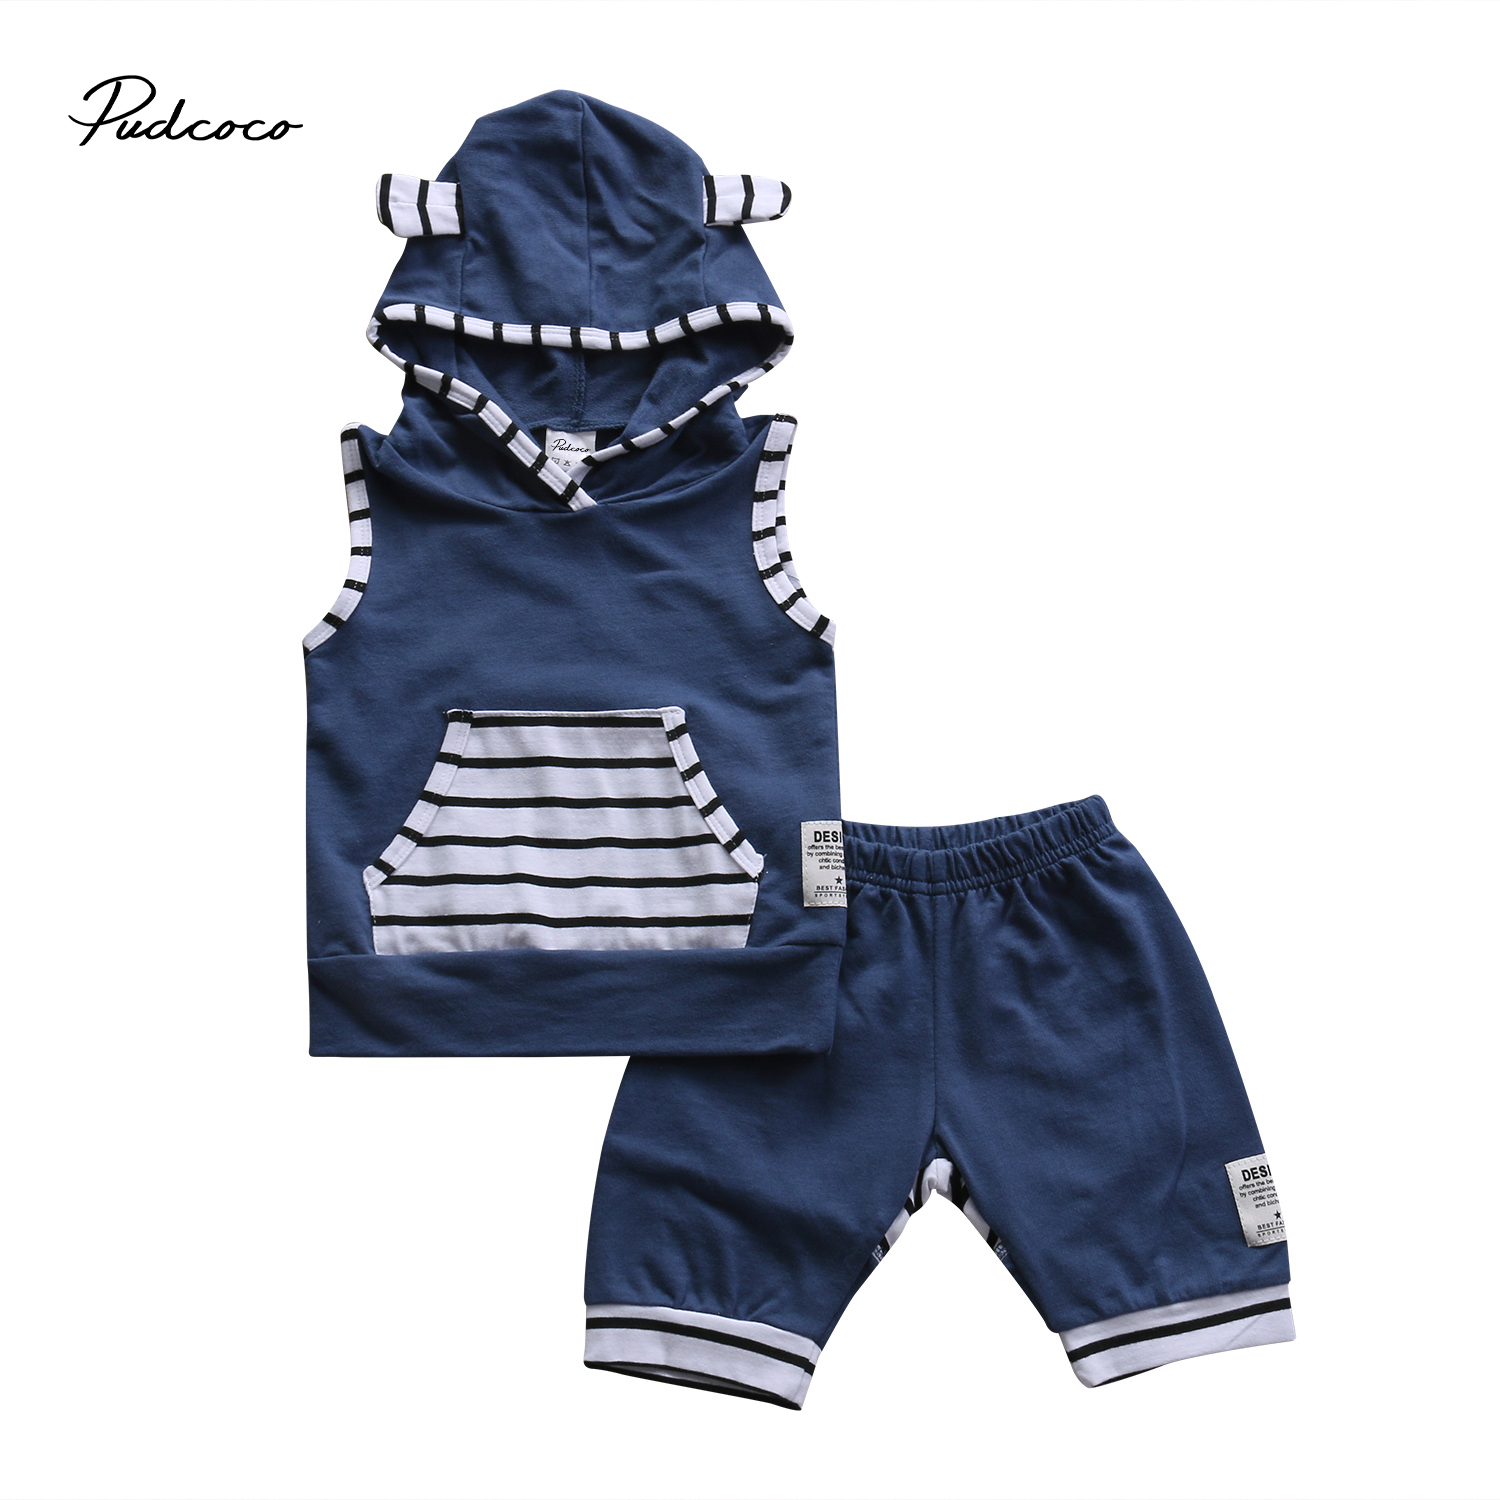 Pudcoco 2pcs Toddler Kids Baby Boys Girls Outfits Cotton Sleeveless Striped Hooded +Pants Clothes Set 0-3 Years Helen115